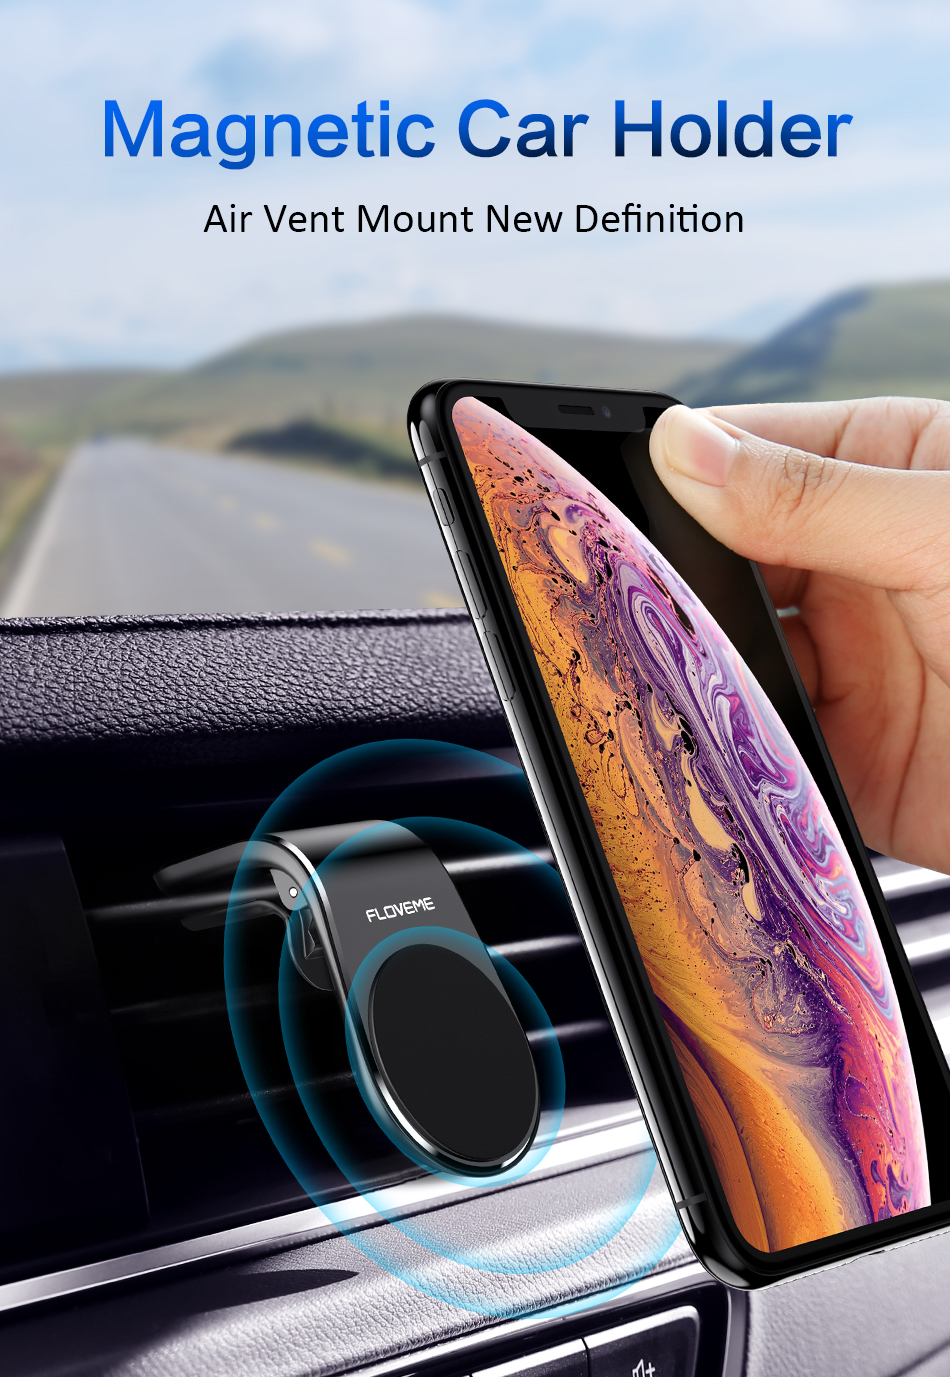 Magnetic Car Mount Holder, FULL ALLOY METAL Venroii 4326547369 Universal Air Vent Outlet 360 Rotate Magnetic Car Mount Bracket Phone Holder for iPhone 7 6S 6 Plus,5,5s,4,Samsung Galaxy S7 S8 Edge S5 Note Silver